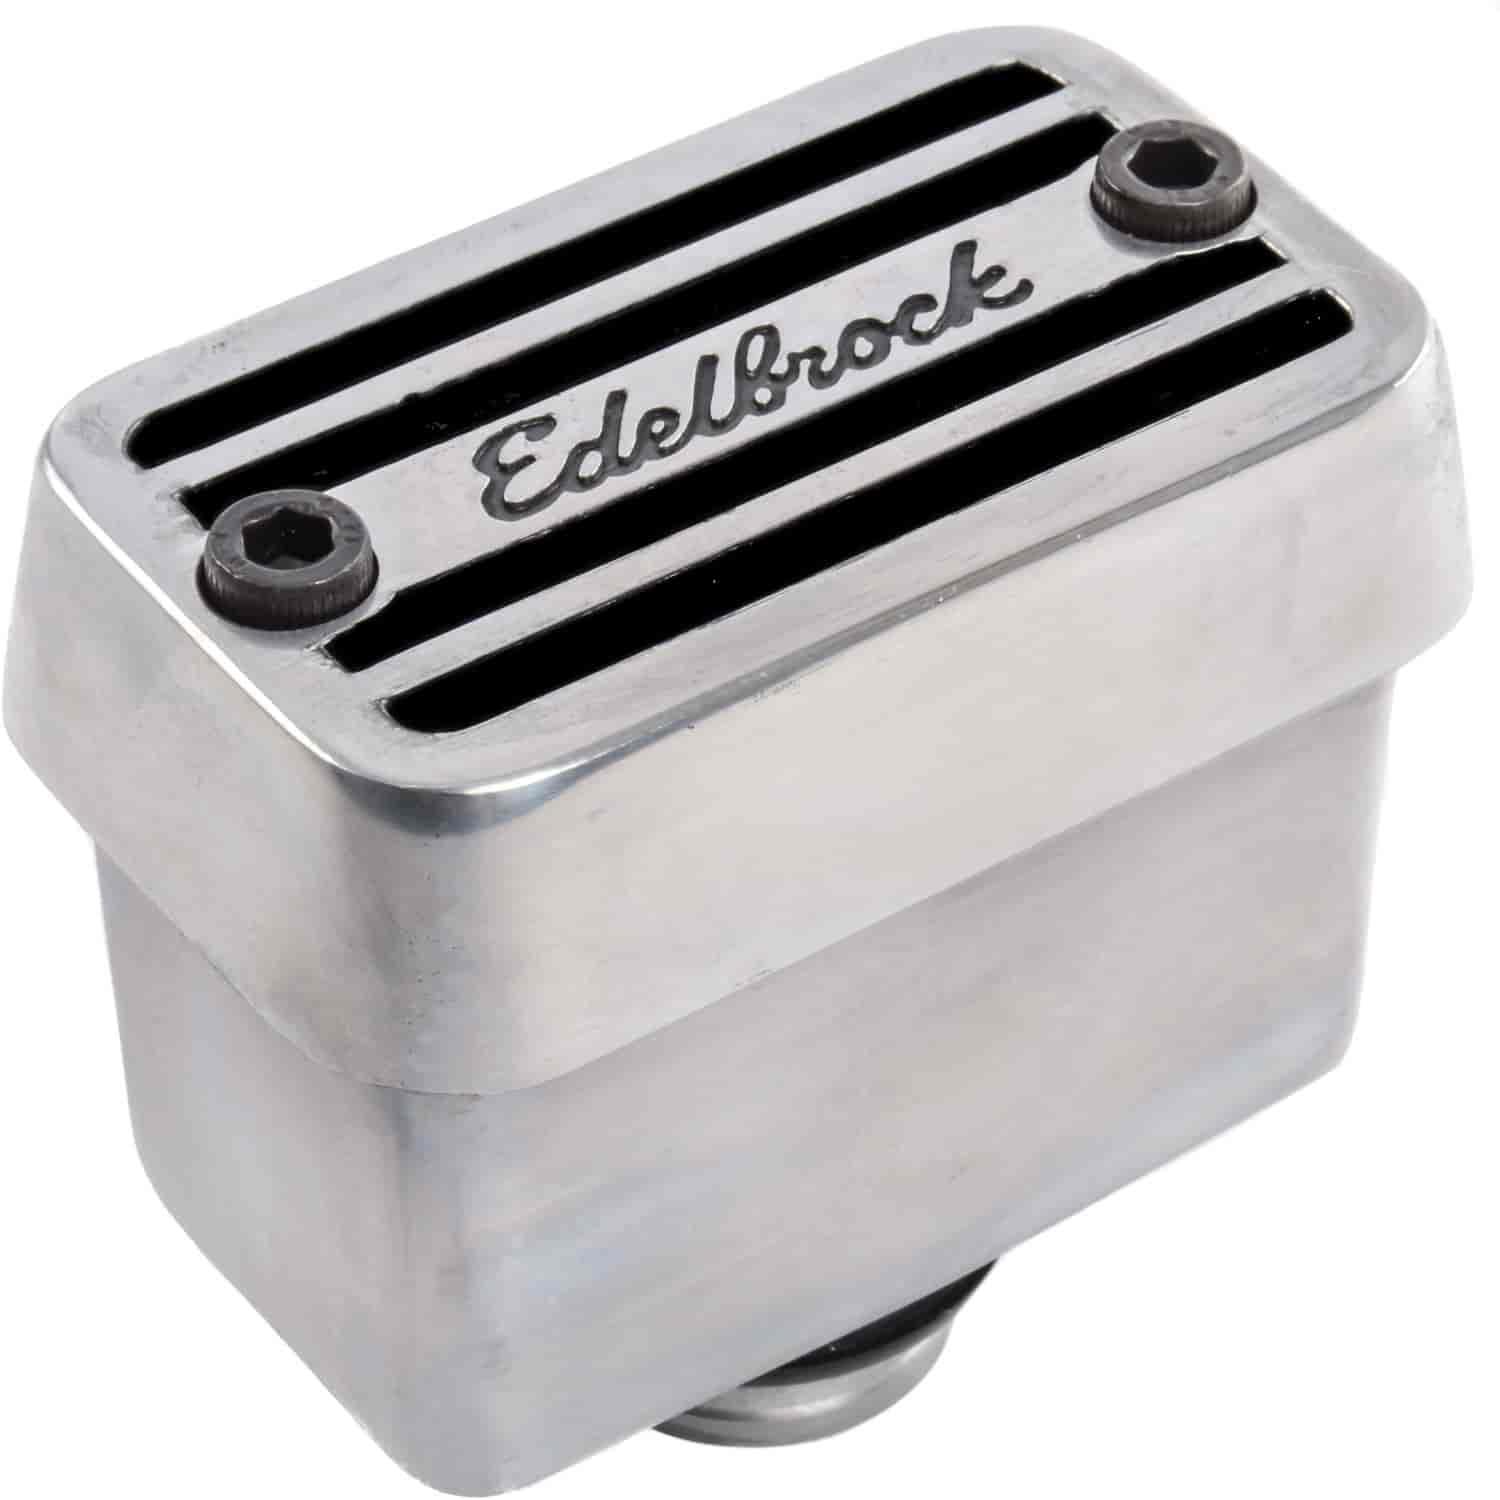 Edelbrock 4204 - Edelbrock Breathers and Accessories